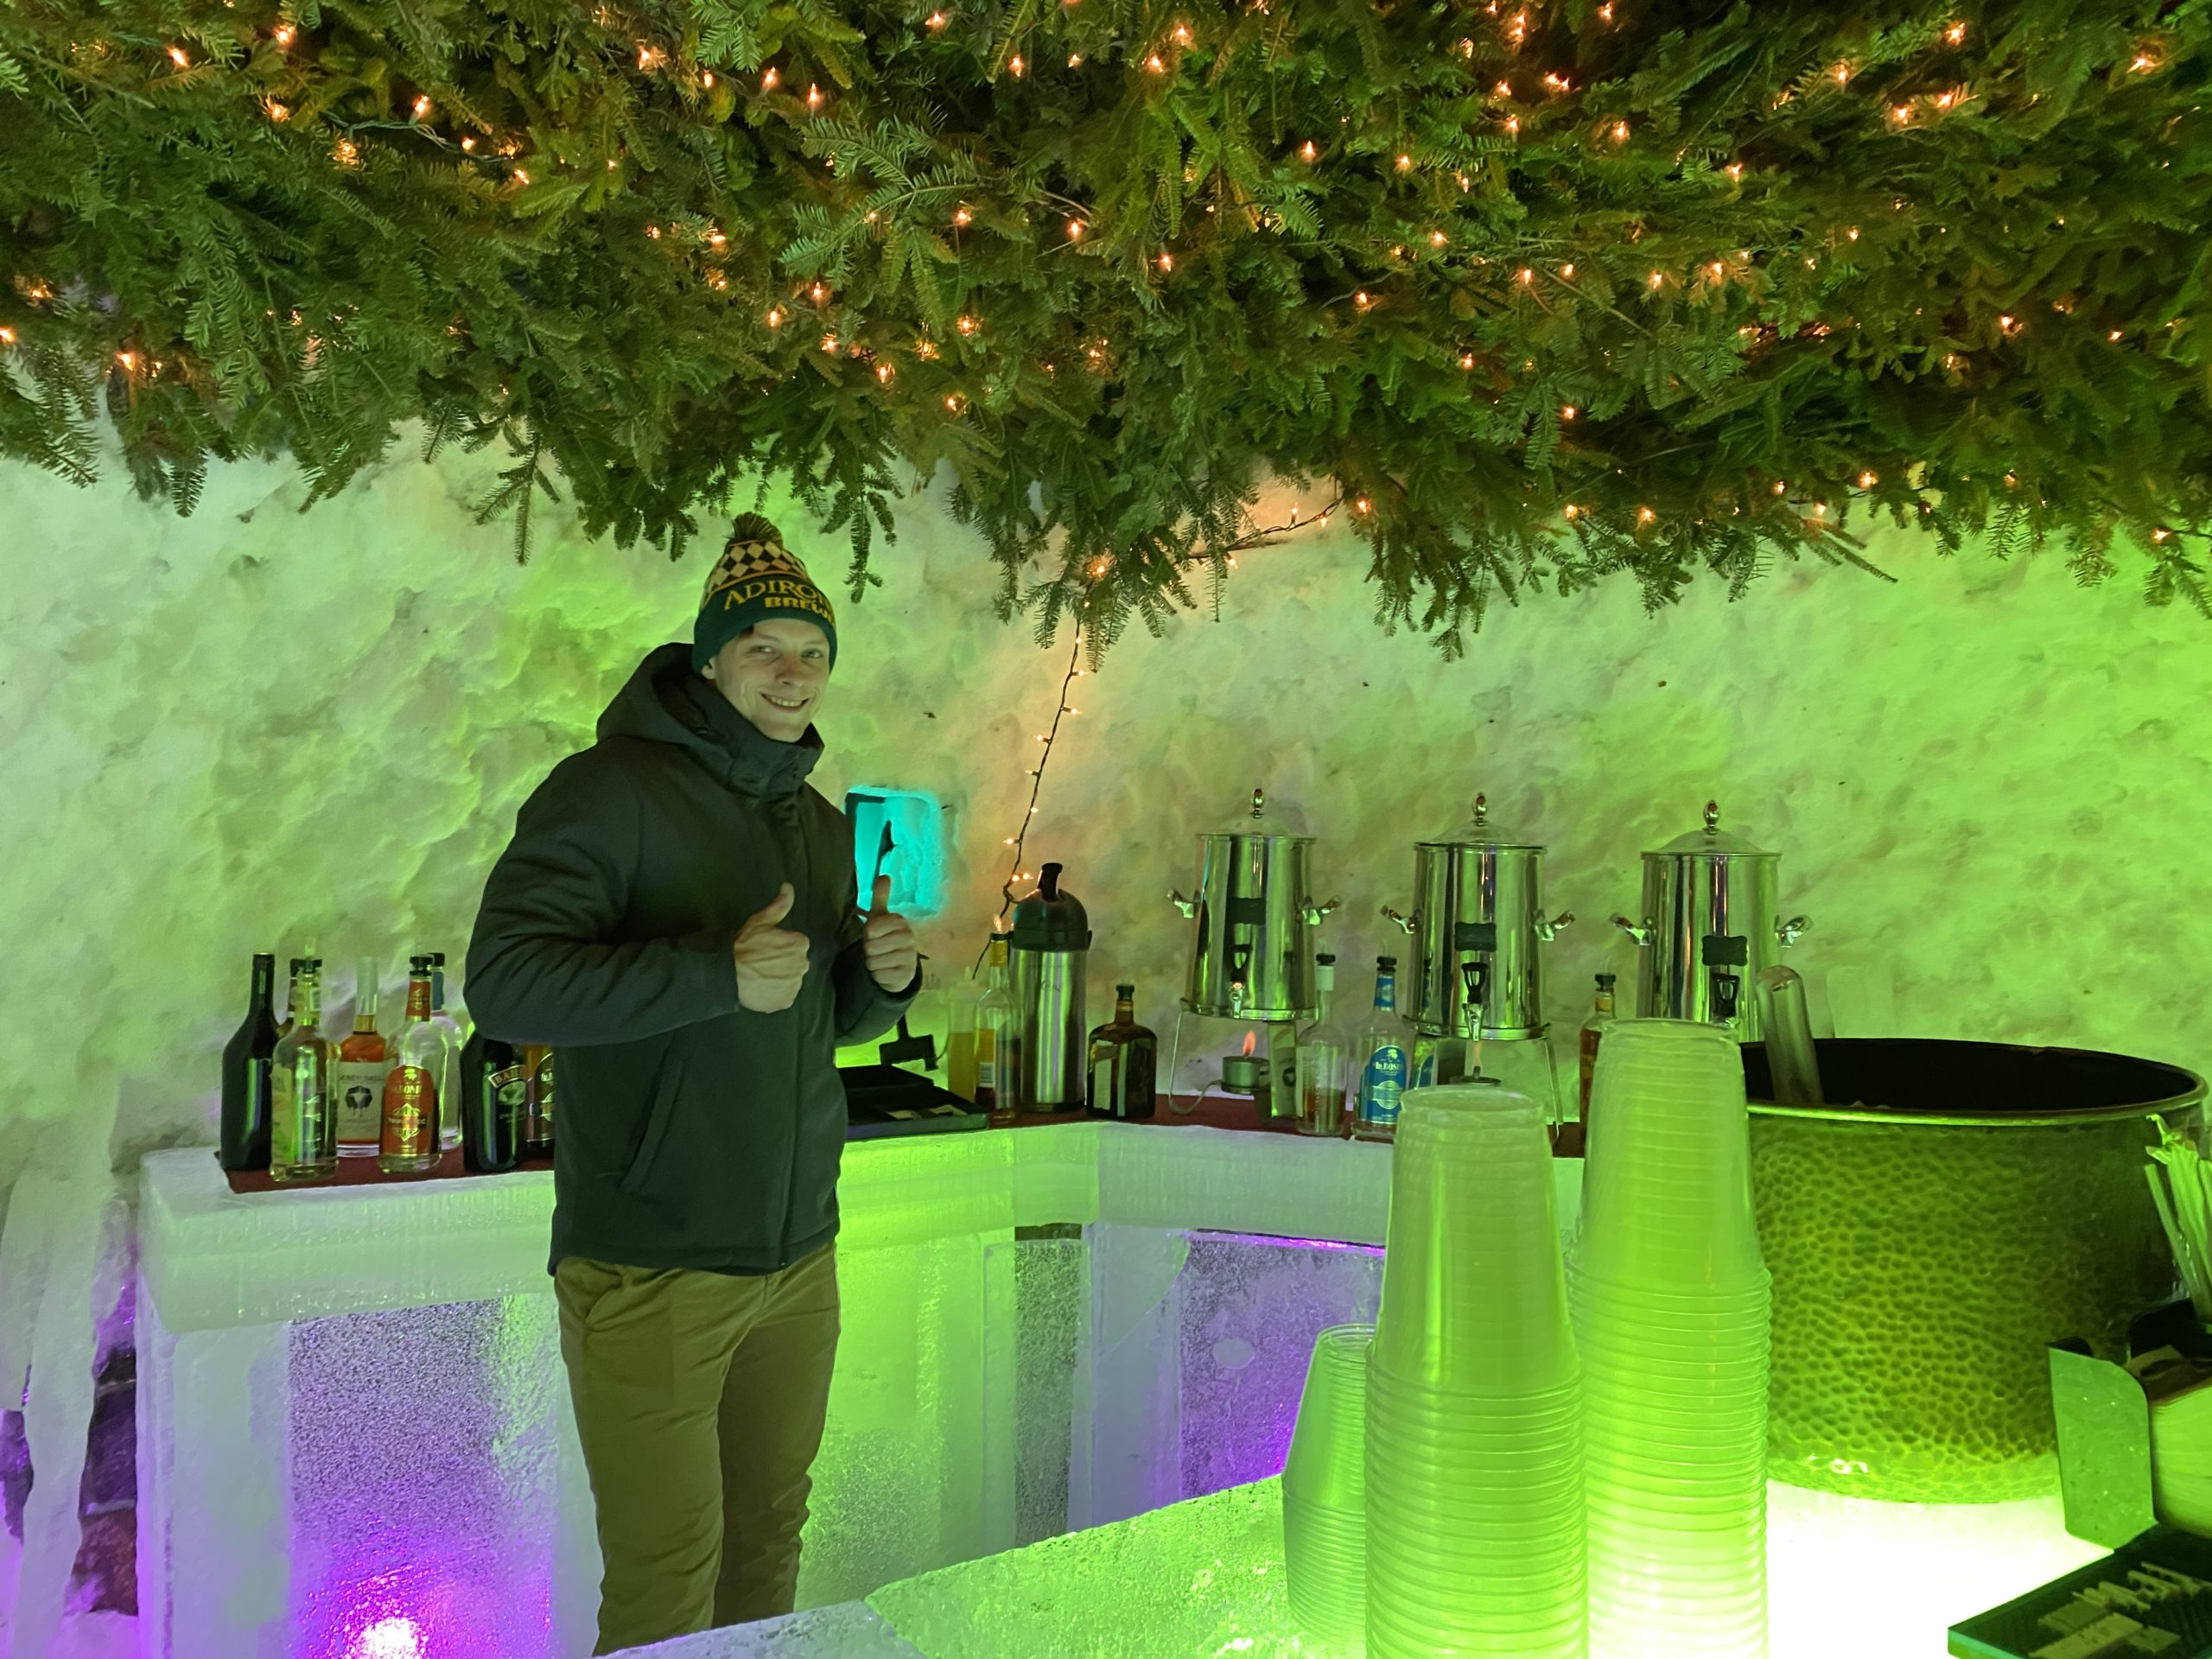 visiting the ice bars in the Lake George region of New York